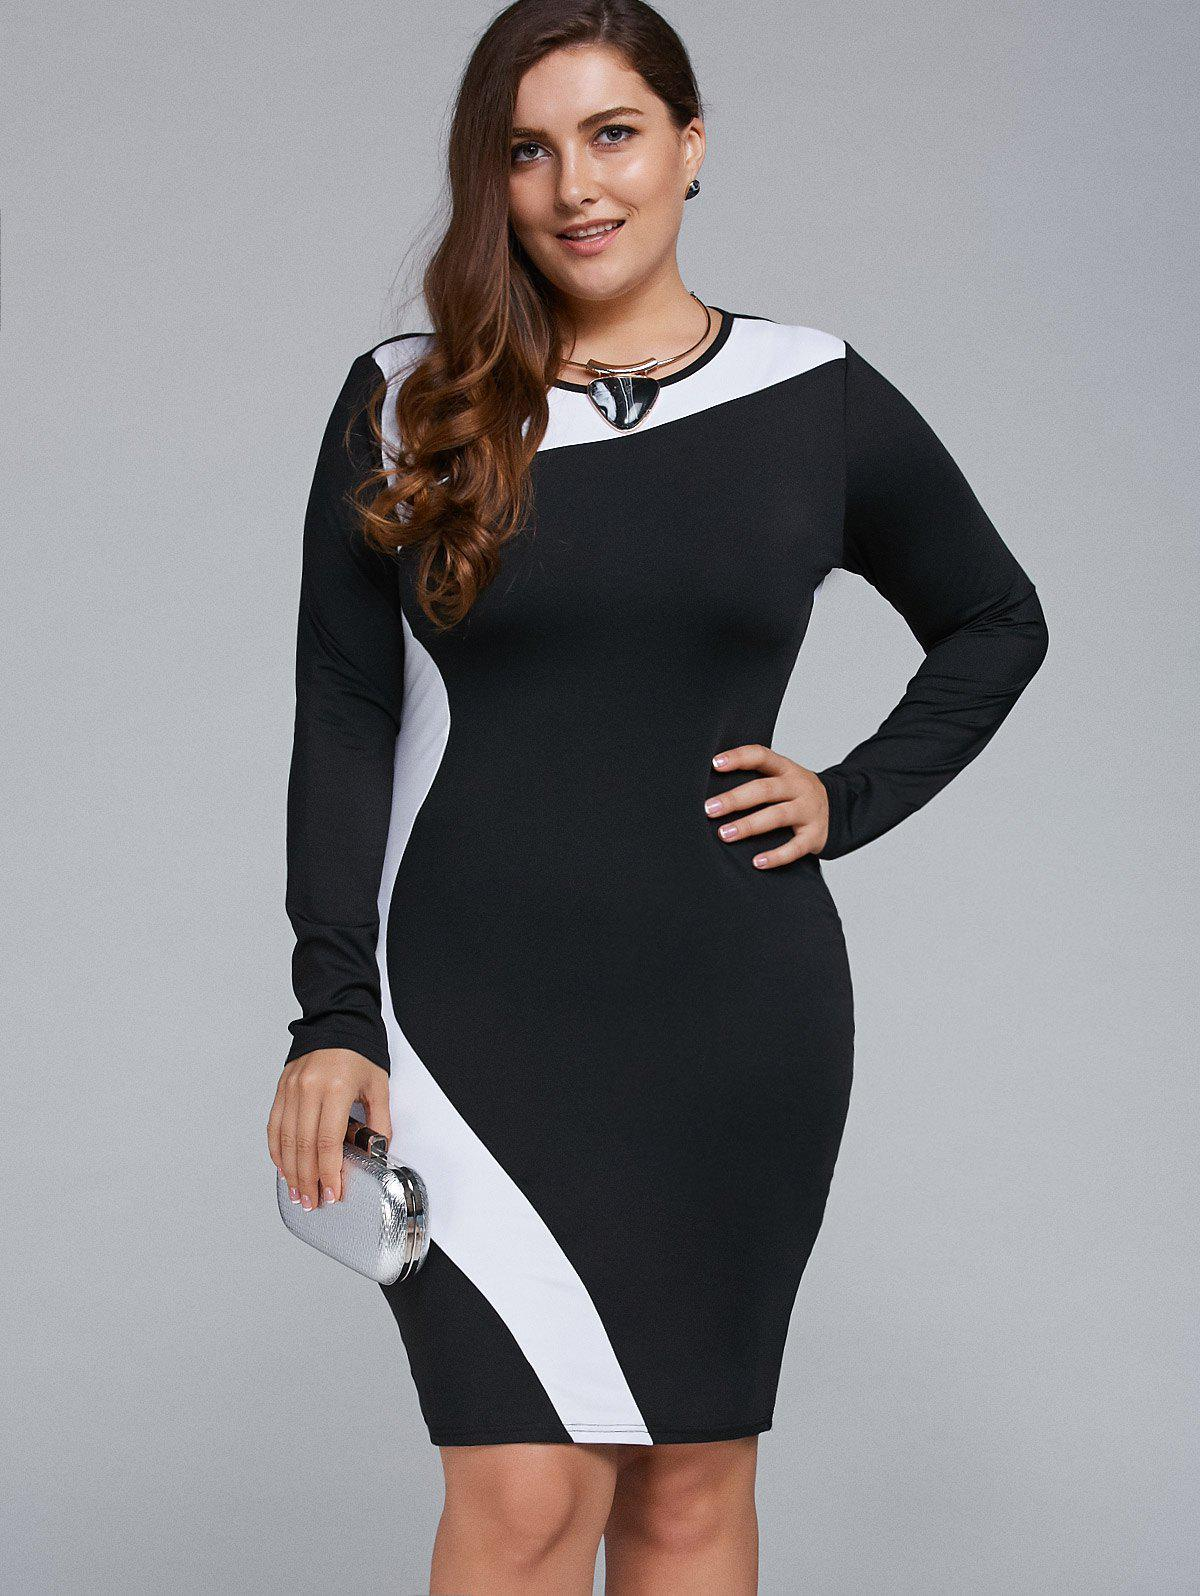 White 2xl Plus Size Long Sleeve Bodycon Business Dress | RoseGal.com